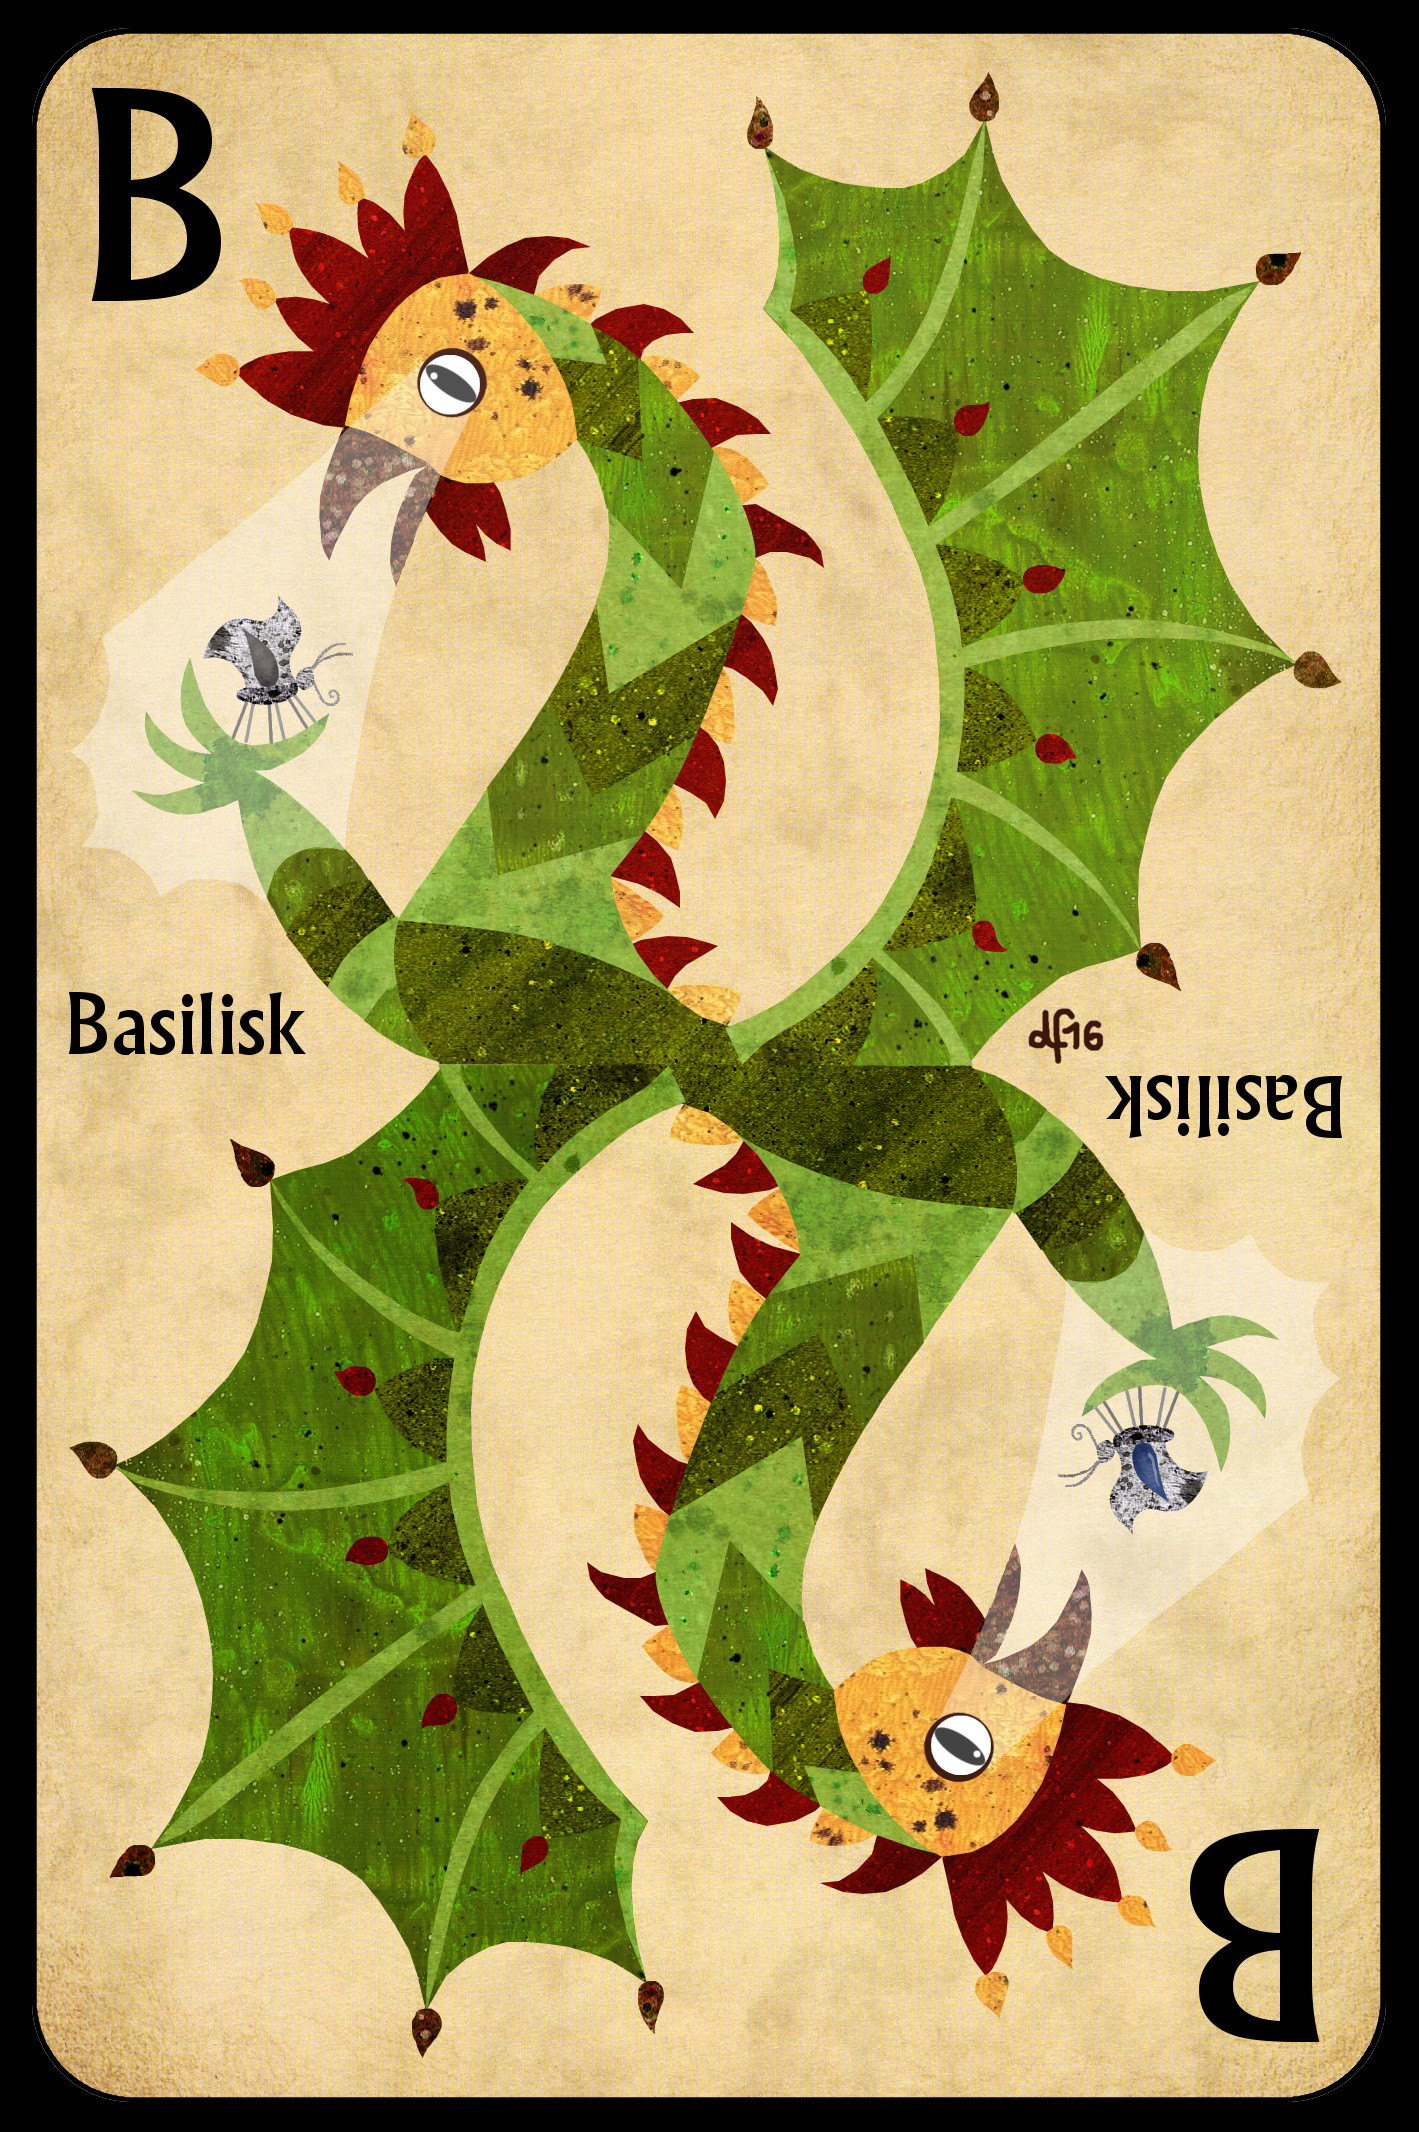 B is for Basilisk +++ Find the blue teardrop! +++ illustration by.